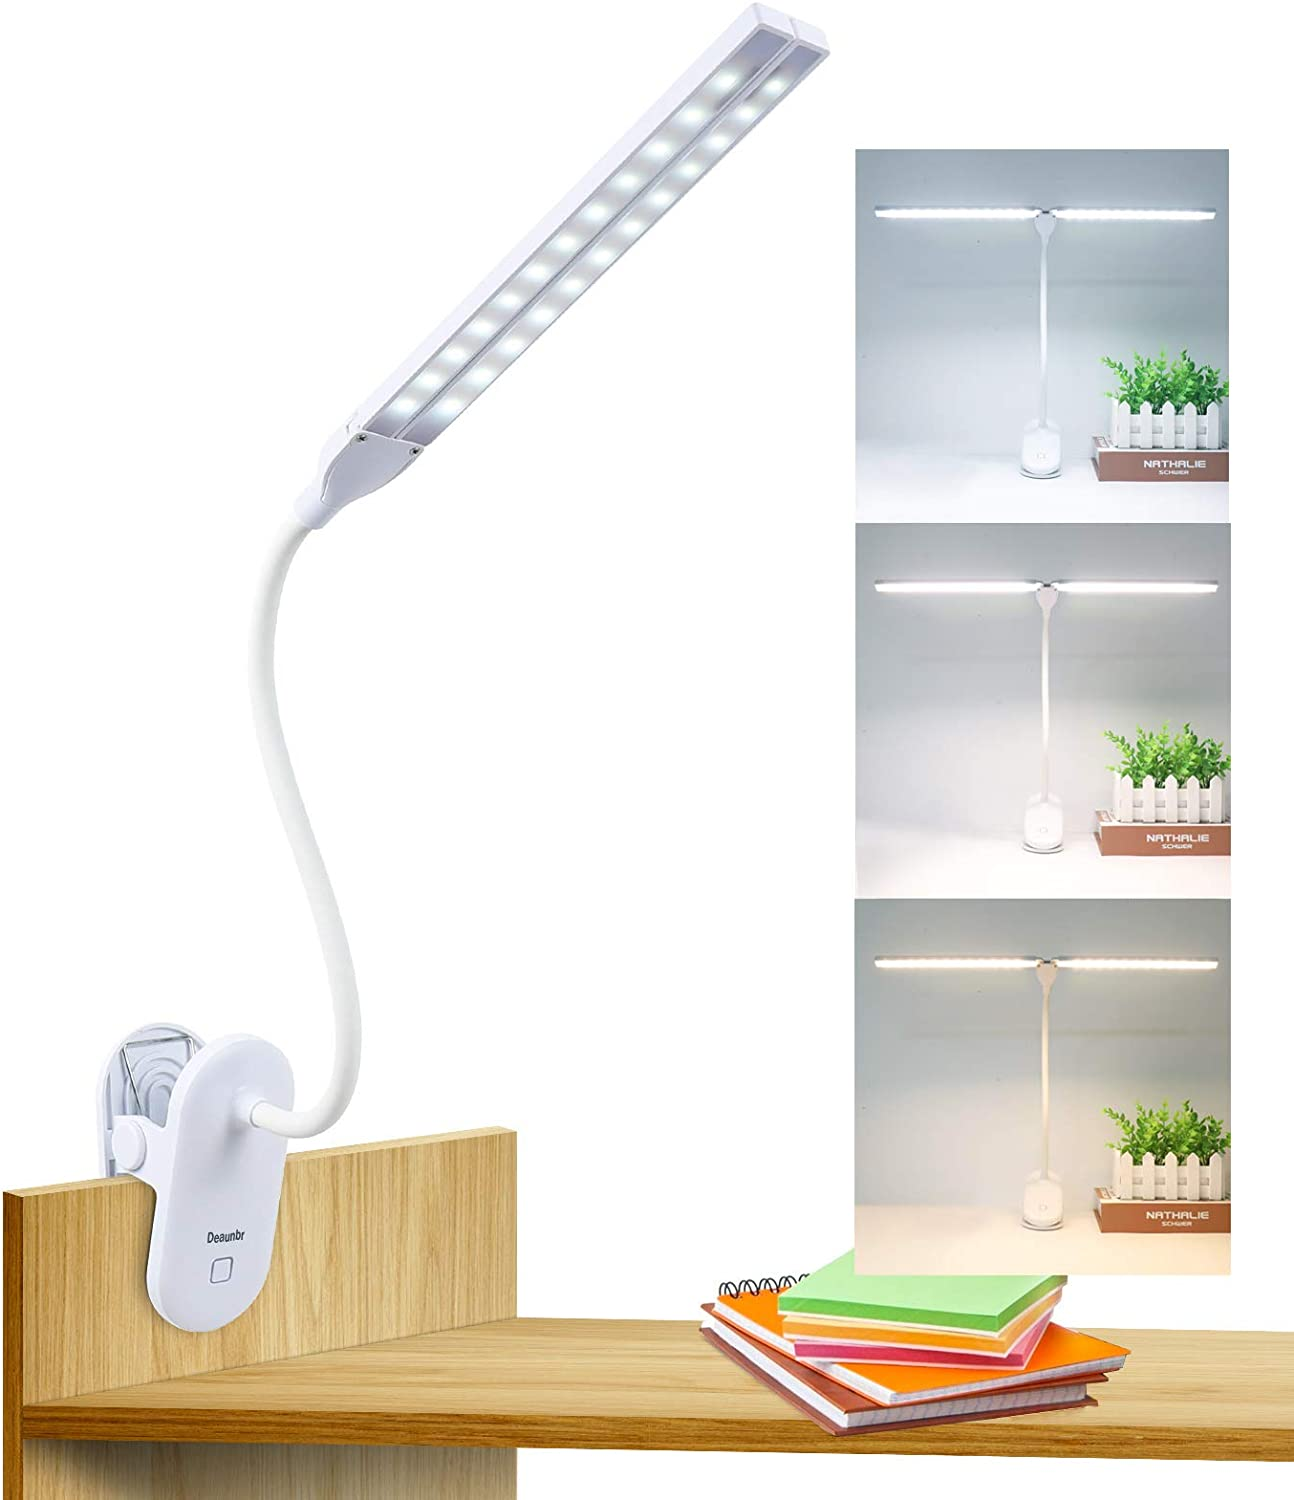 LED Reading Light with Clip, Deaunbr Desk Lamp 48 LEDs 2600mAh Battery USB Rechargeable Book Lights Stepless Adjustable Brightness Eye Protection Flexible Table Lamps for Bed Headboard, Home, Office